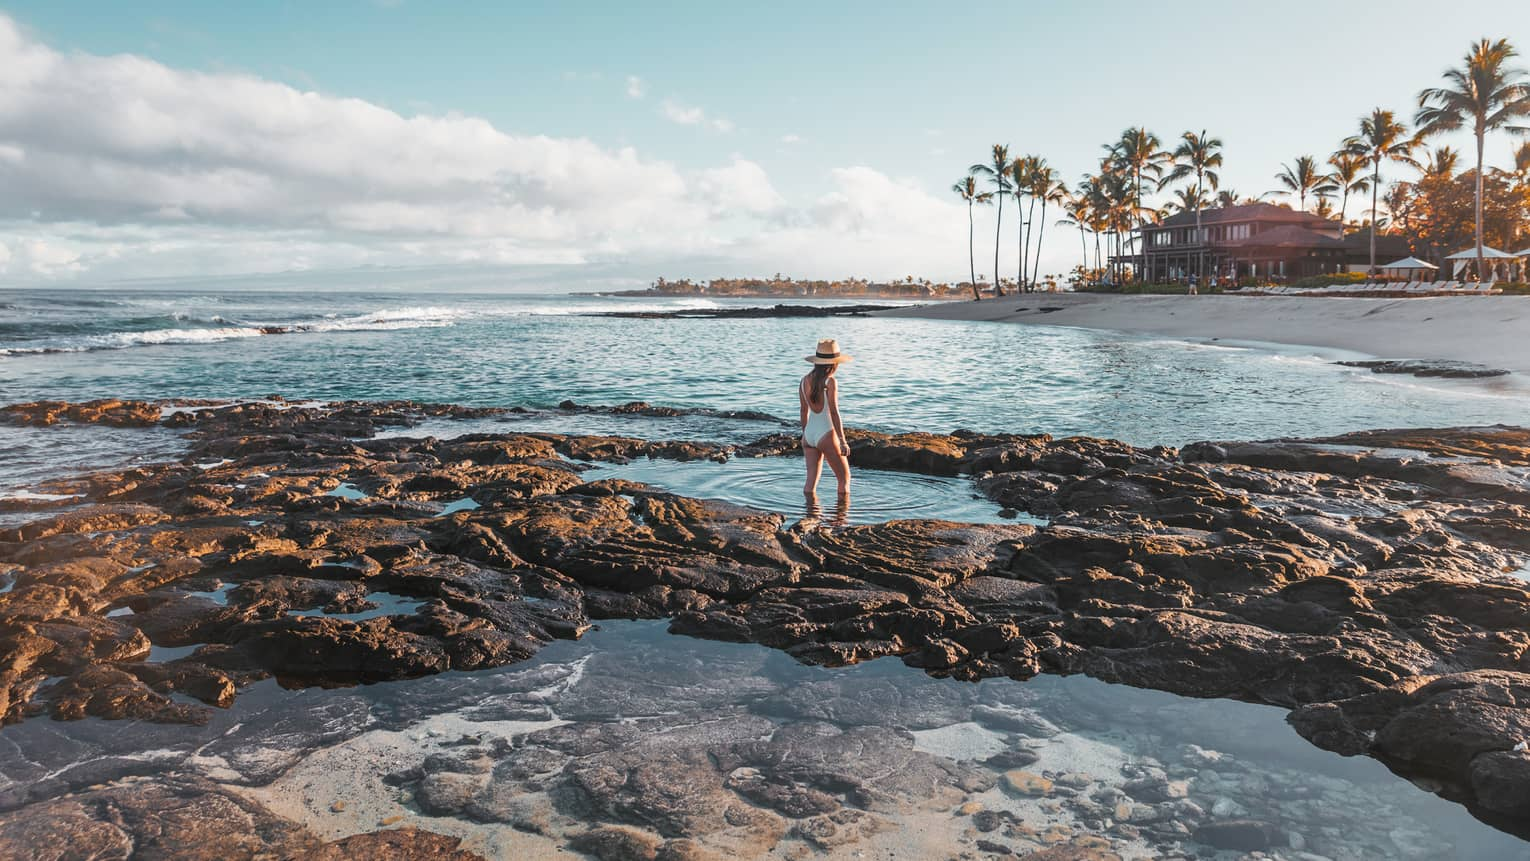 A guest exploring tidal pools by the beach in Hualalai